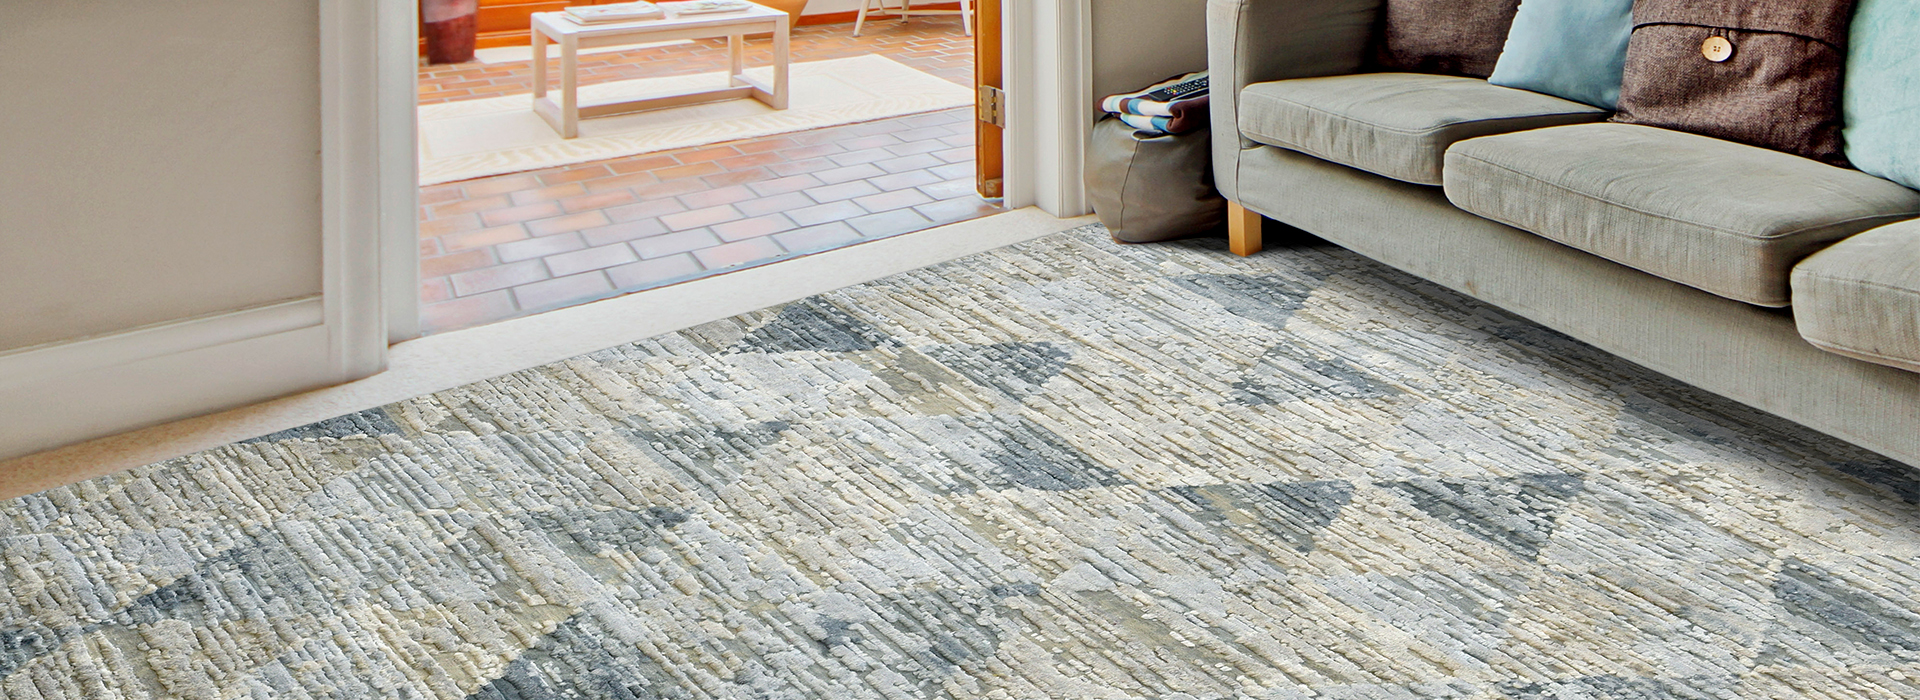 A Hand-knotted rug, also referred to as Oriental rugs, is a rug that is made by hand on a specialized loom